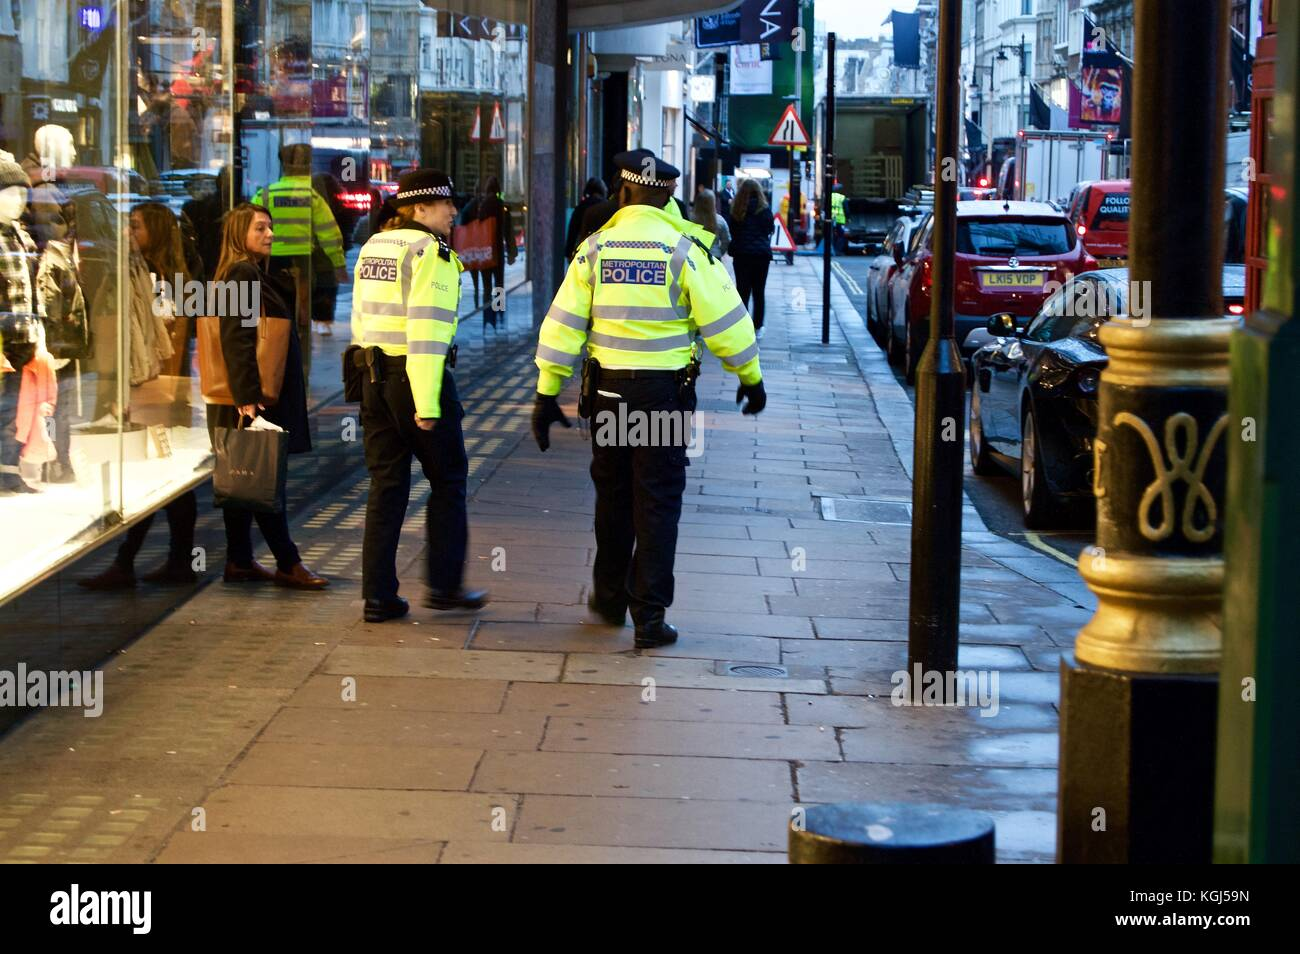 Police officers, one make and one female, New Bond Street, Christmas 2017, London, UK - Stock Image